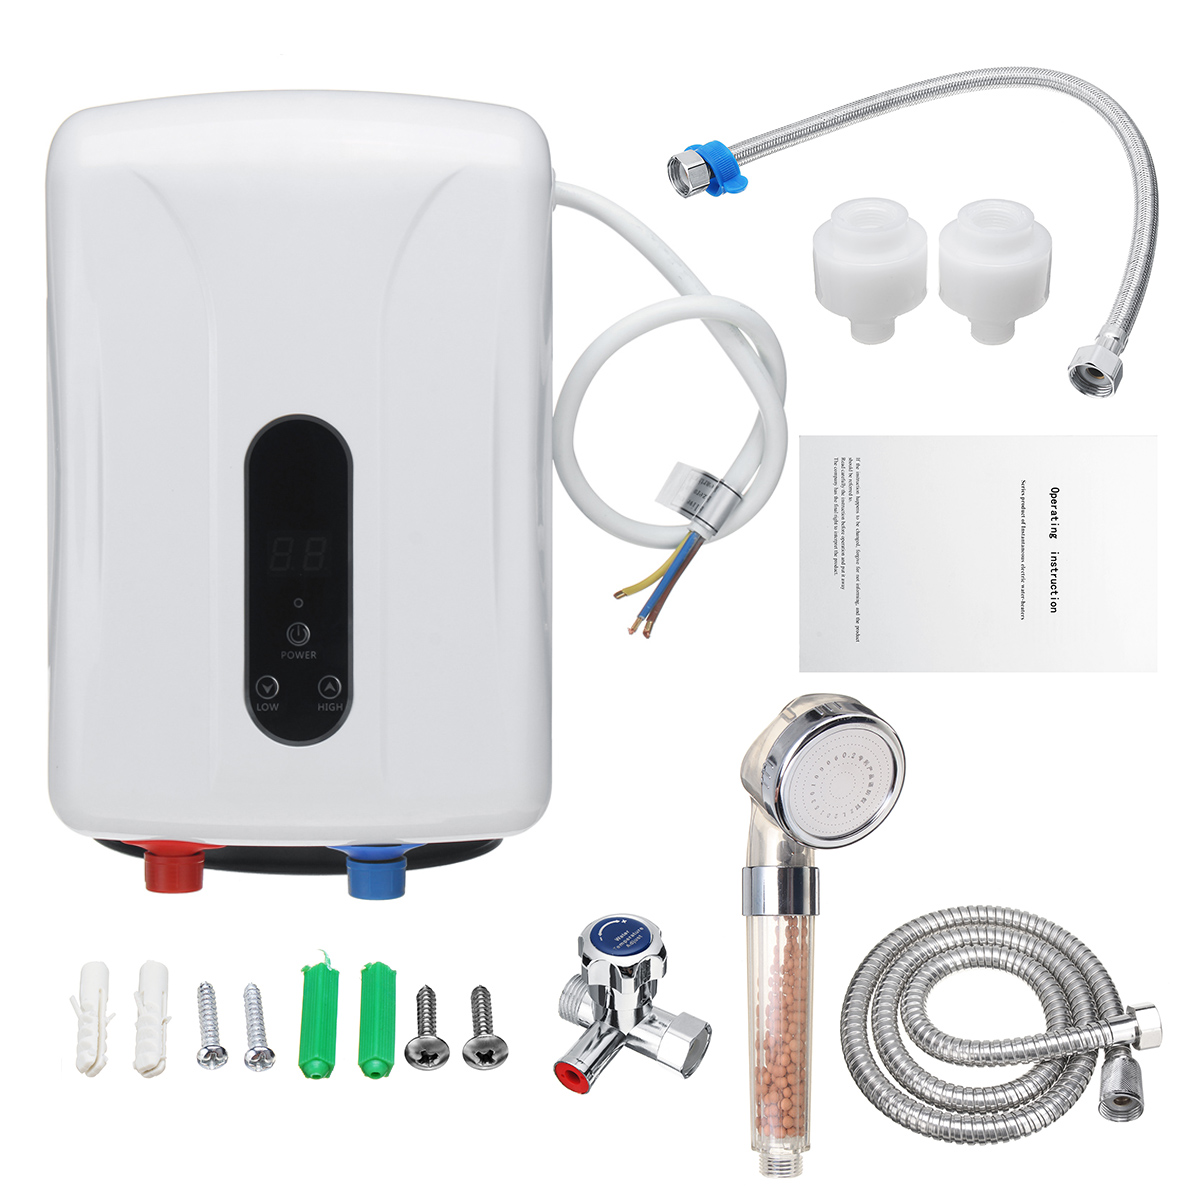 5.5KW Tankless Instant Electric Hot Water Heater Boiler Kitchen Bathroom Shower Set